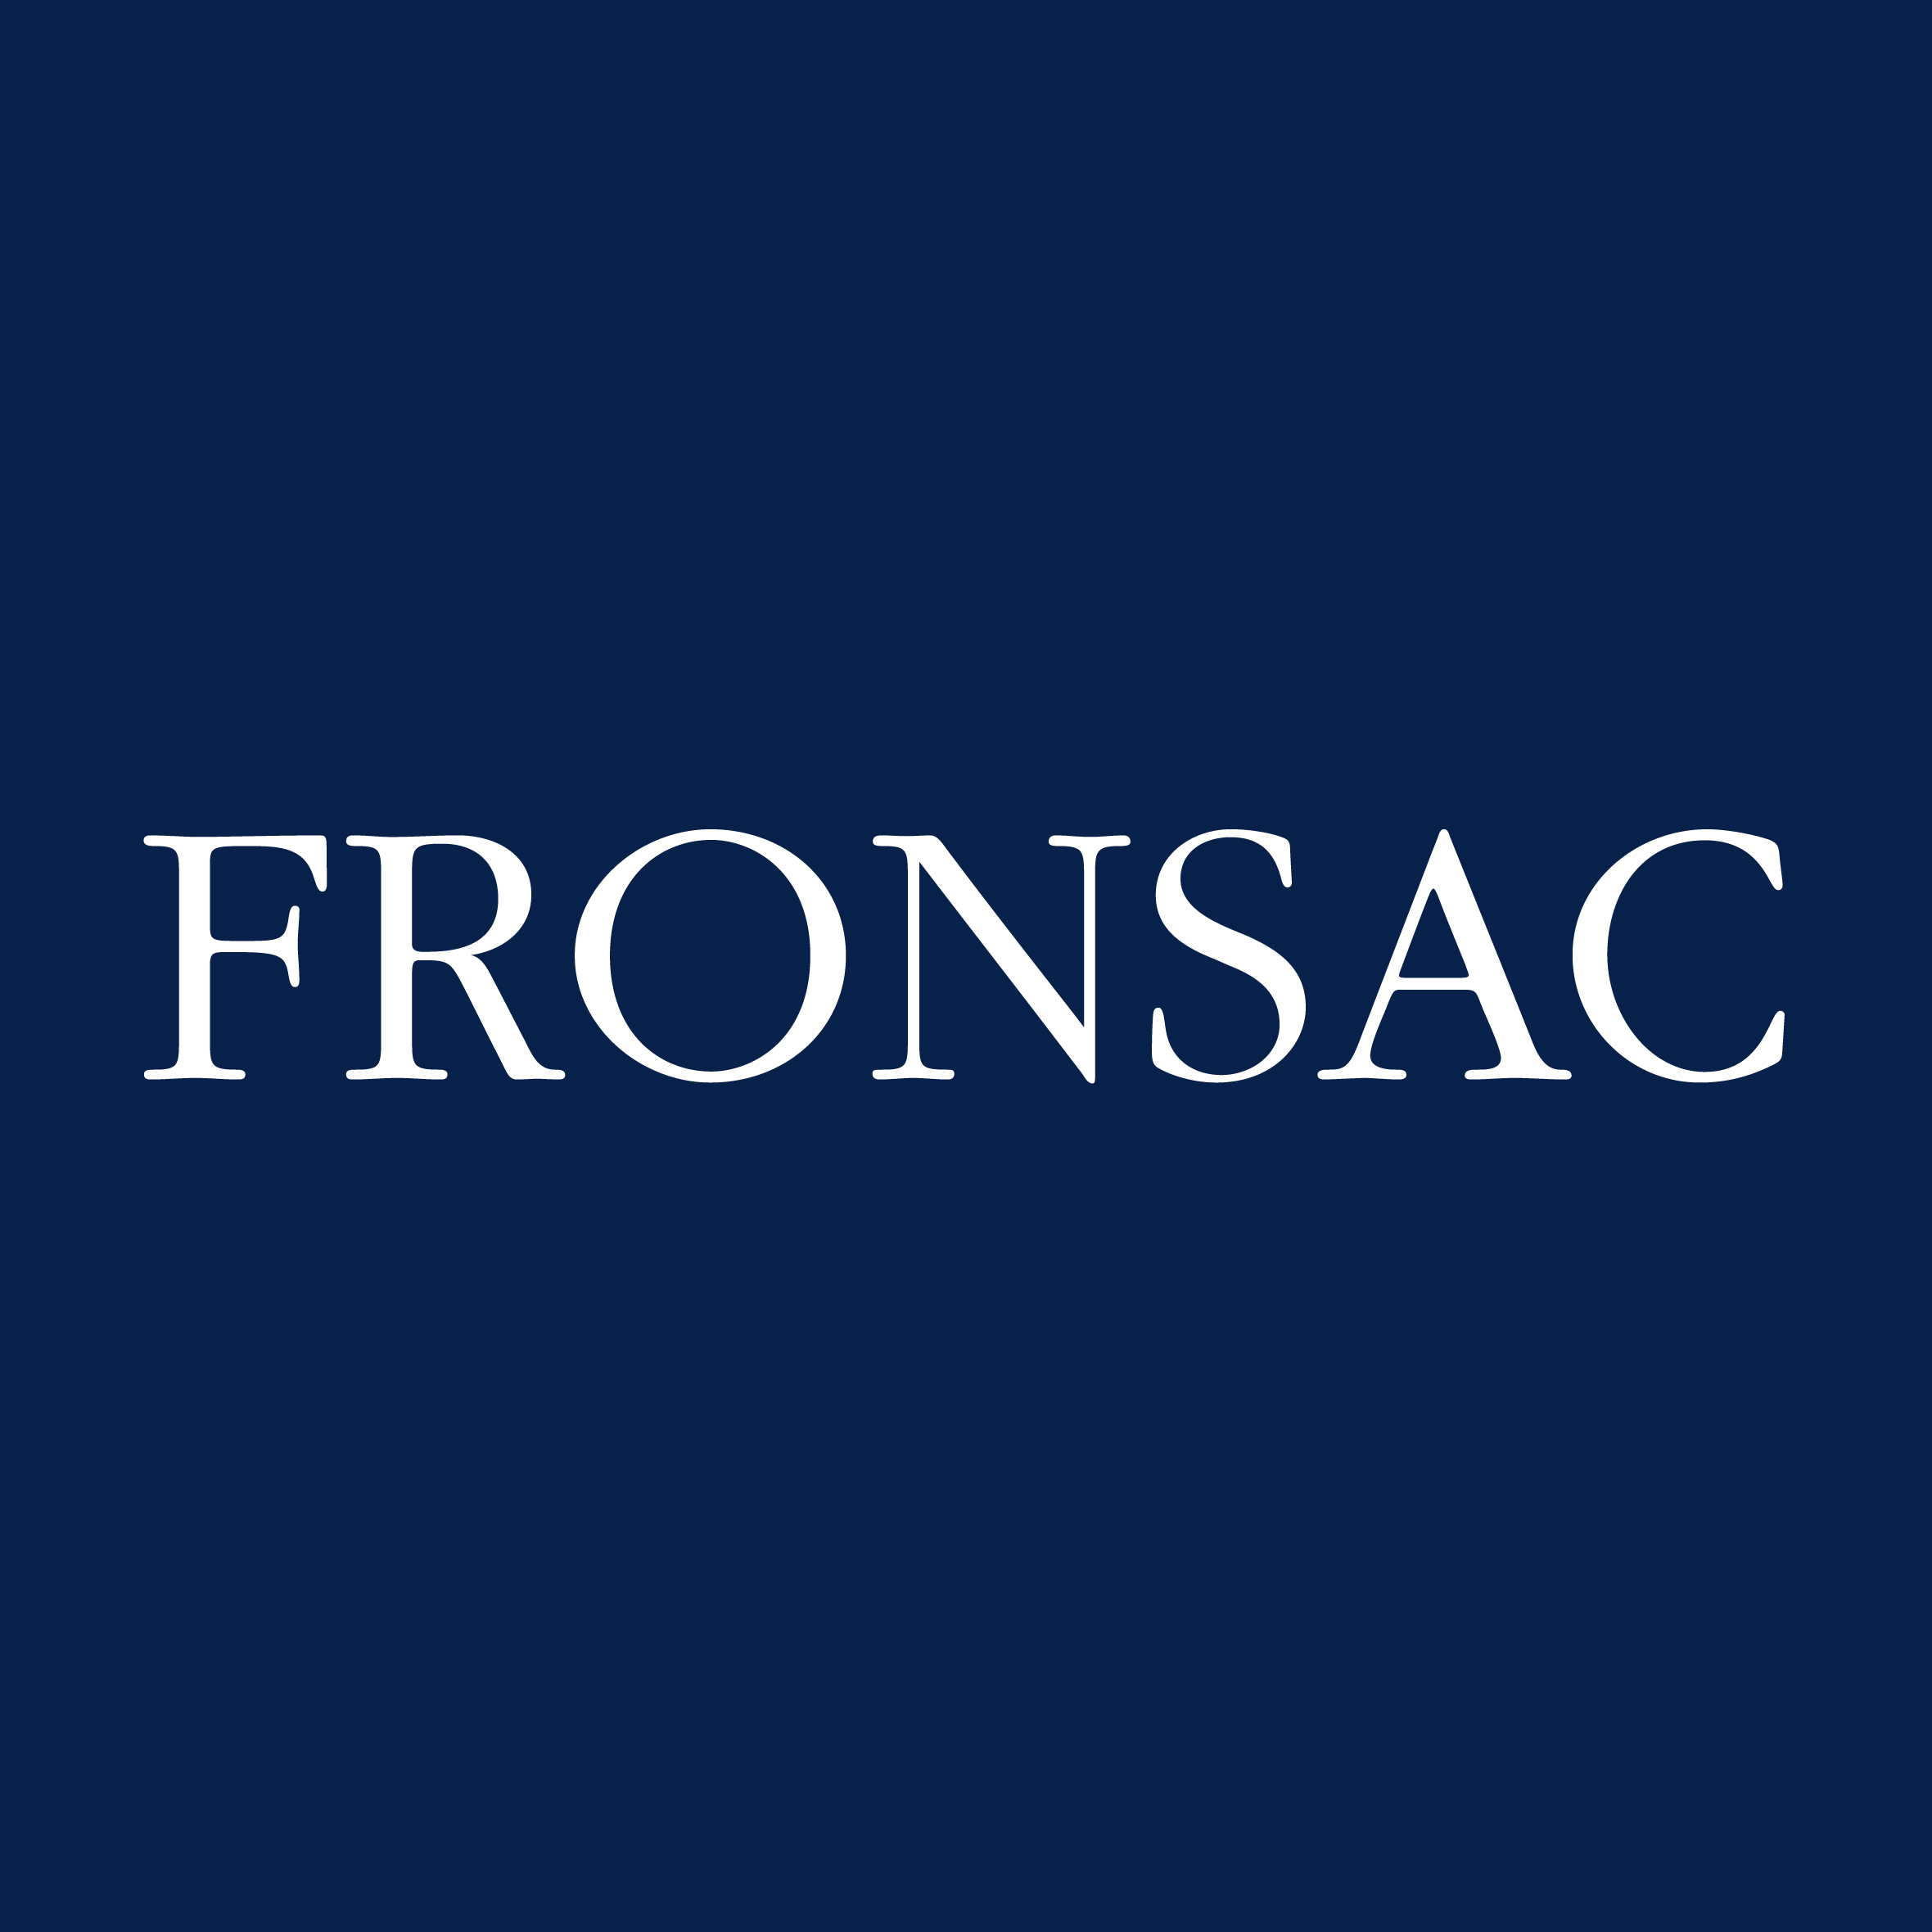 Fronsac Announces the Closing of a Previously Announced Acquisition